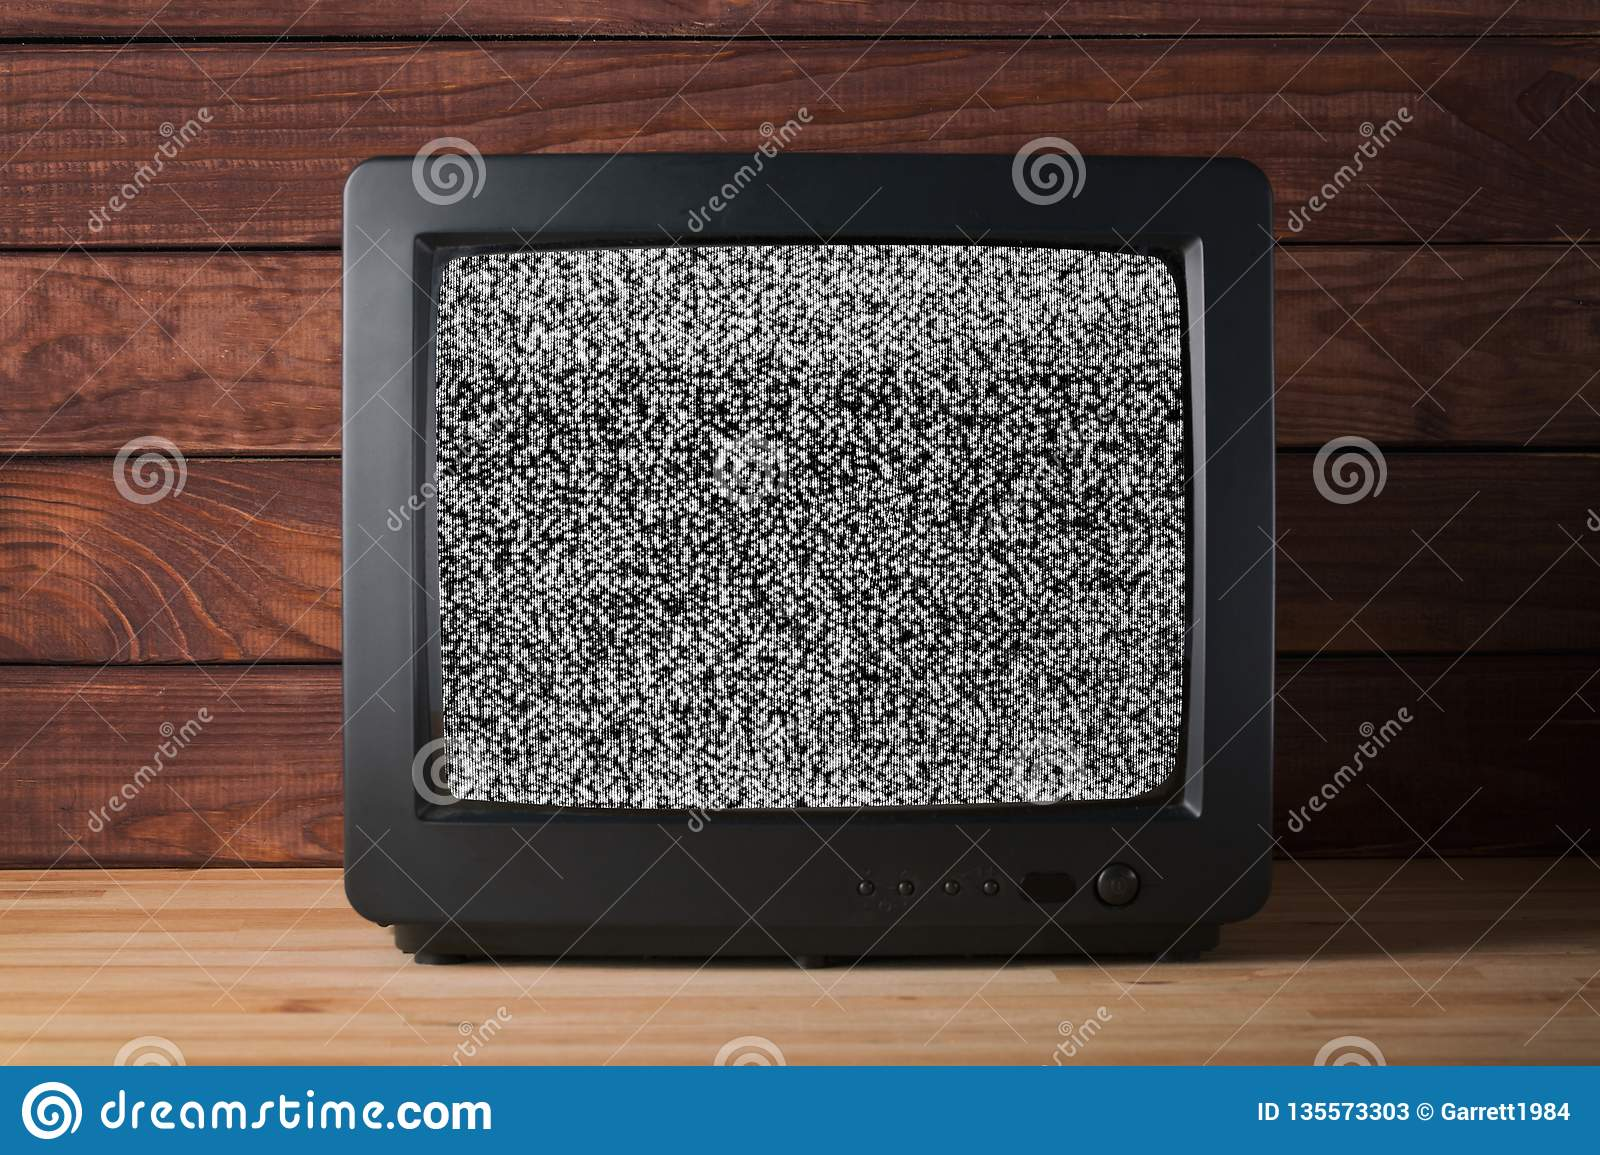 Old vintage TV set televisor on wooden table againt dark wooden wall background with no signal television grainy noise effect on